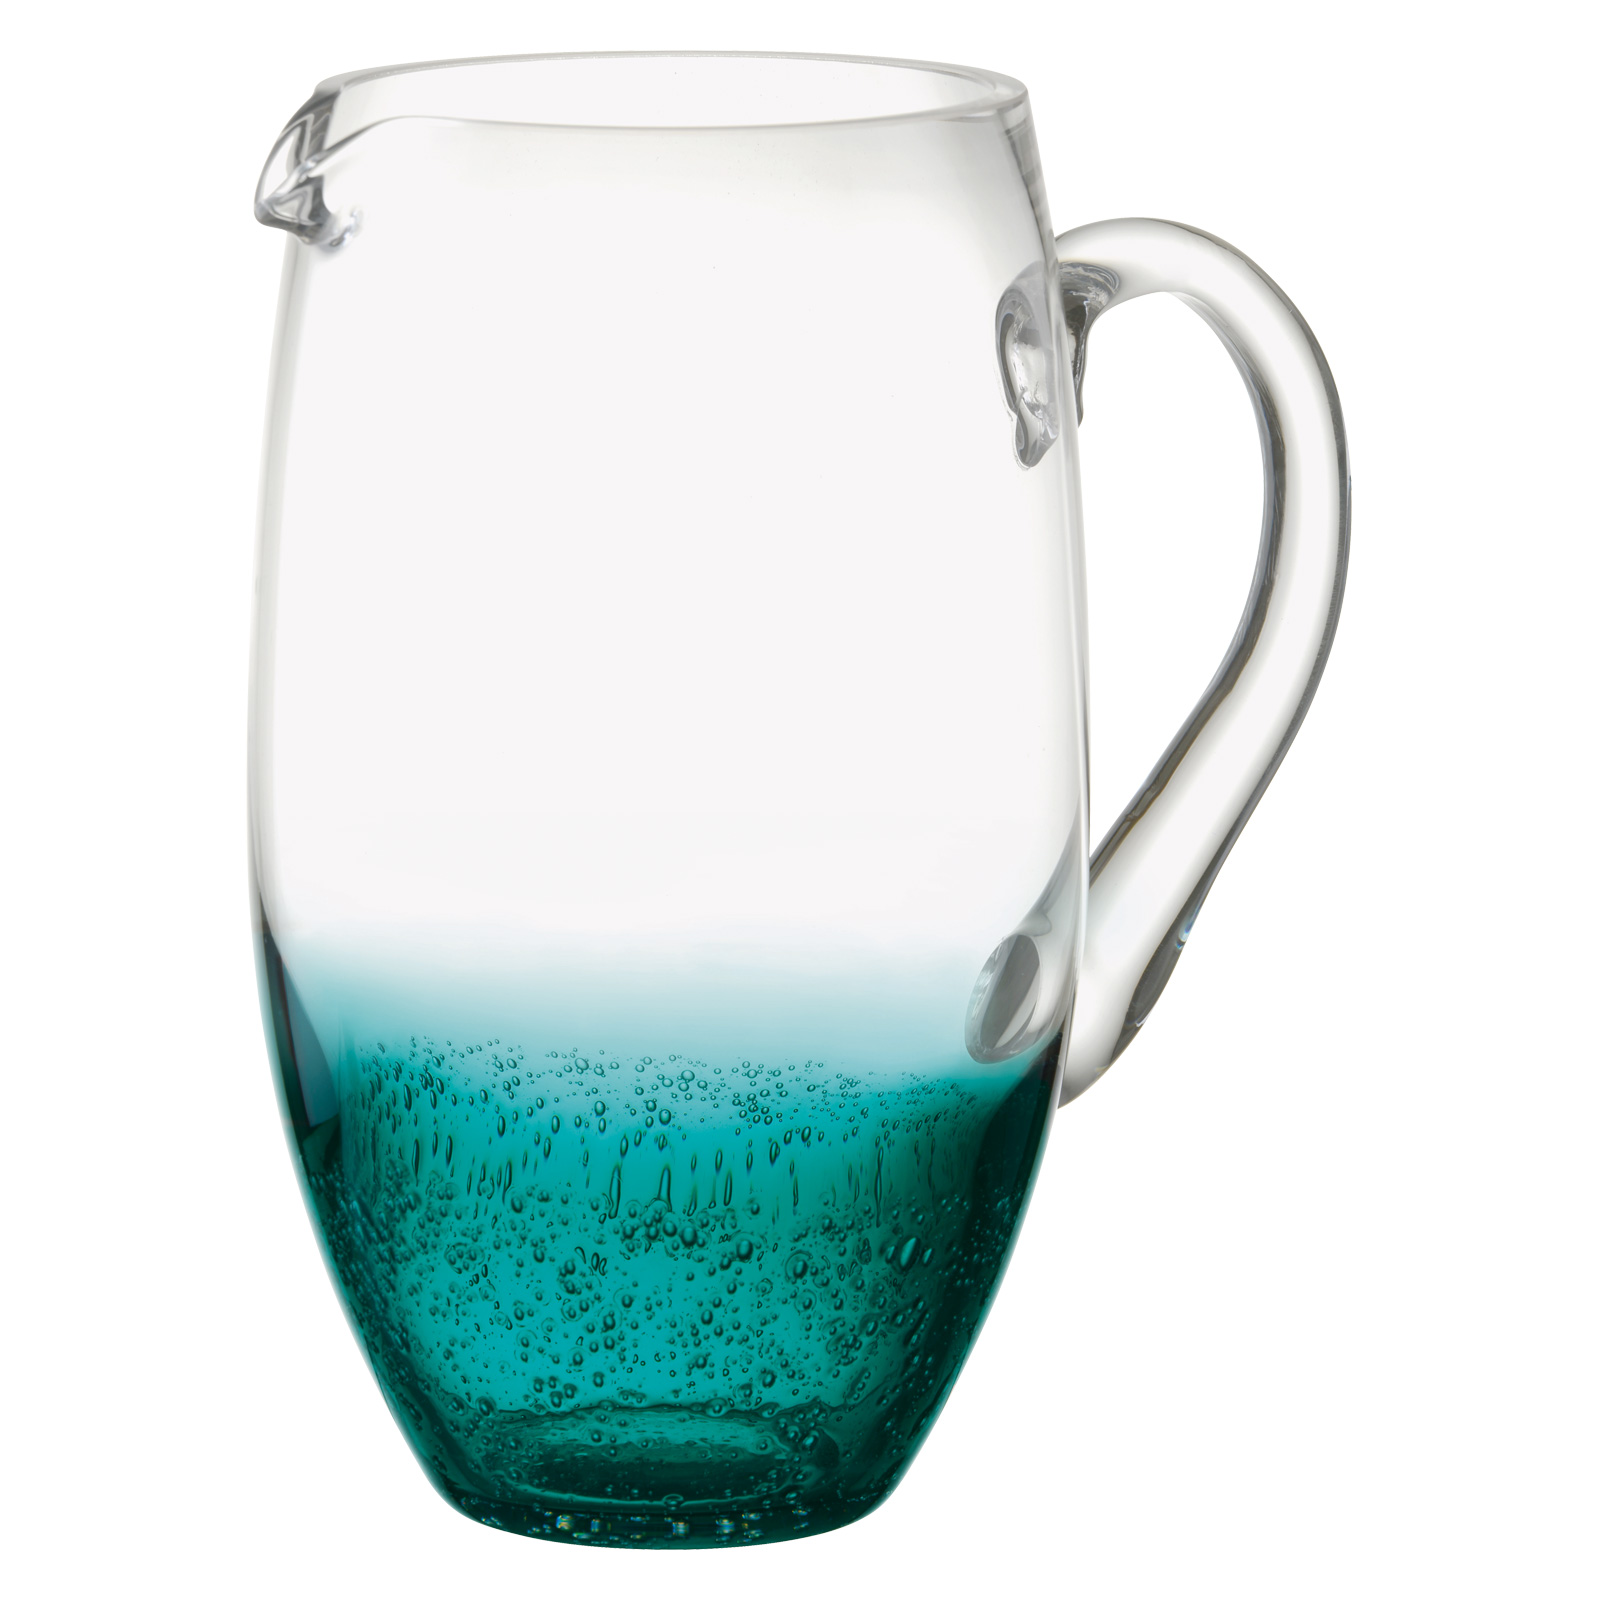 Fizz Jug Blue by Anton Studio Designs